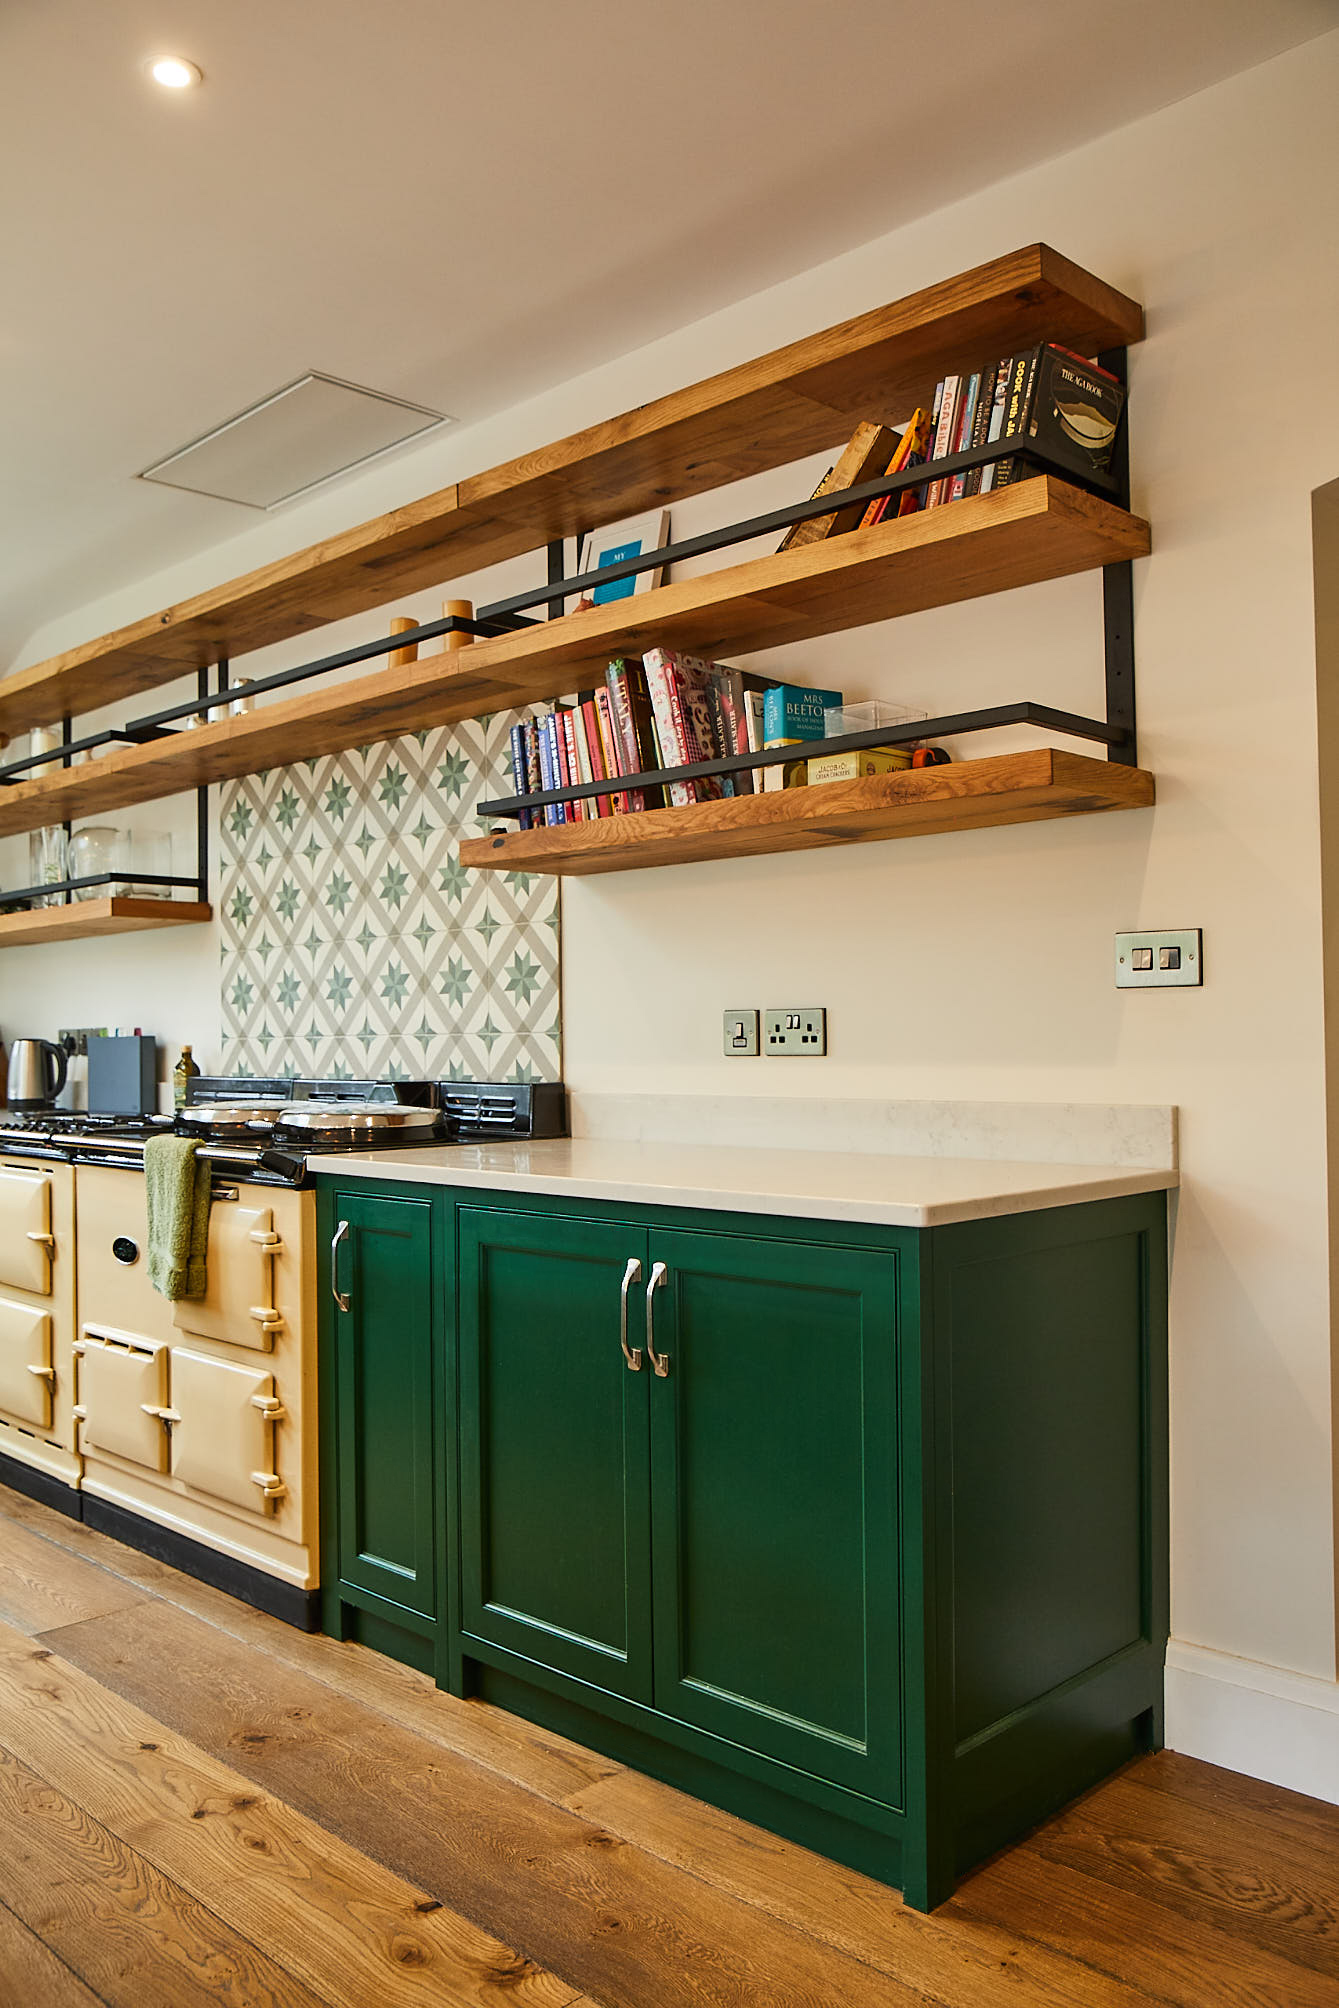 Chunky oak open shelves hang above green kitchen cabinets and cream AGA